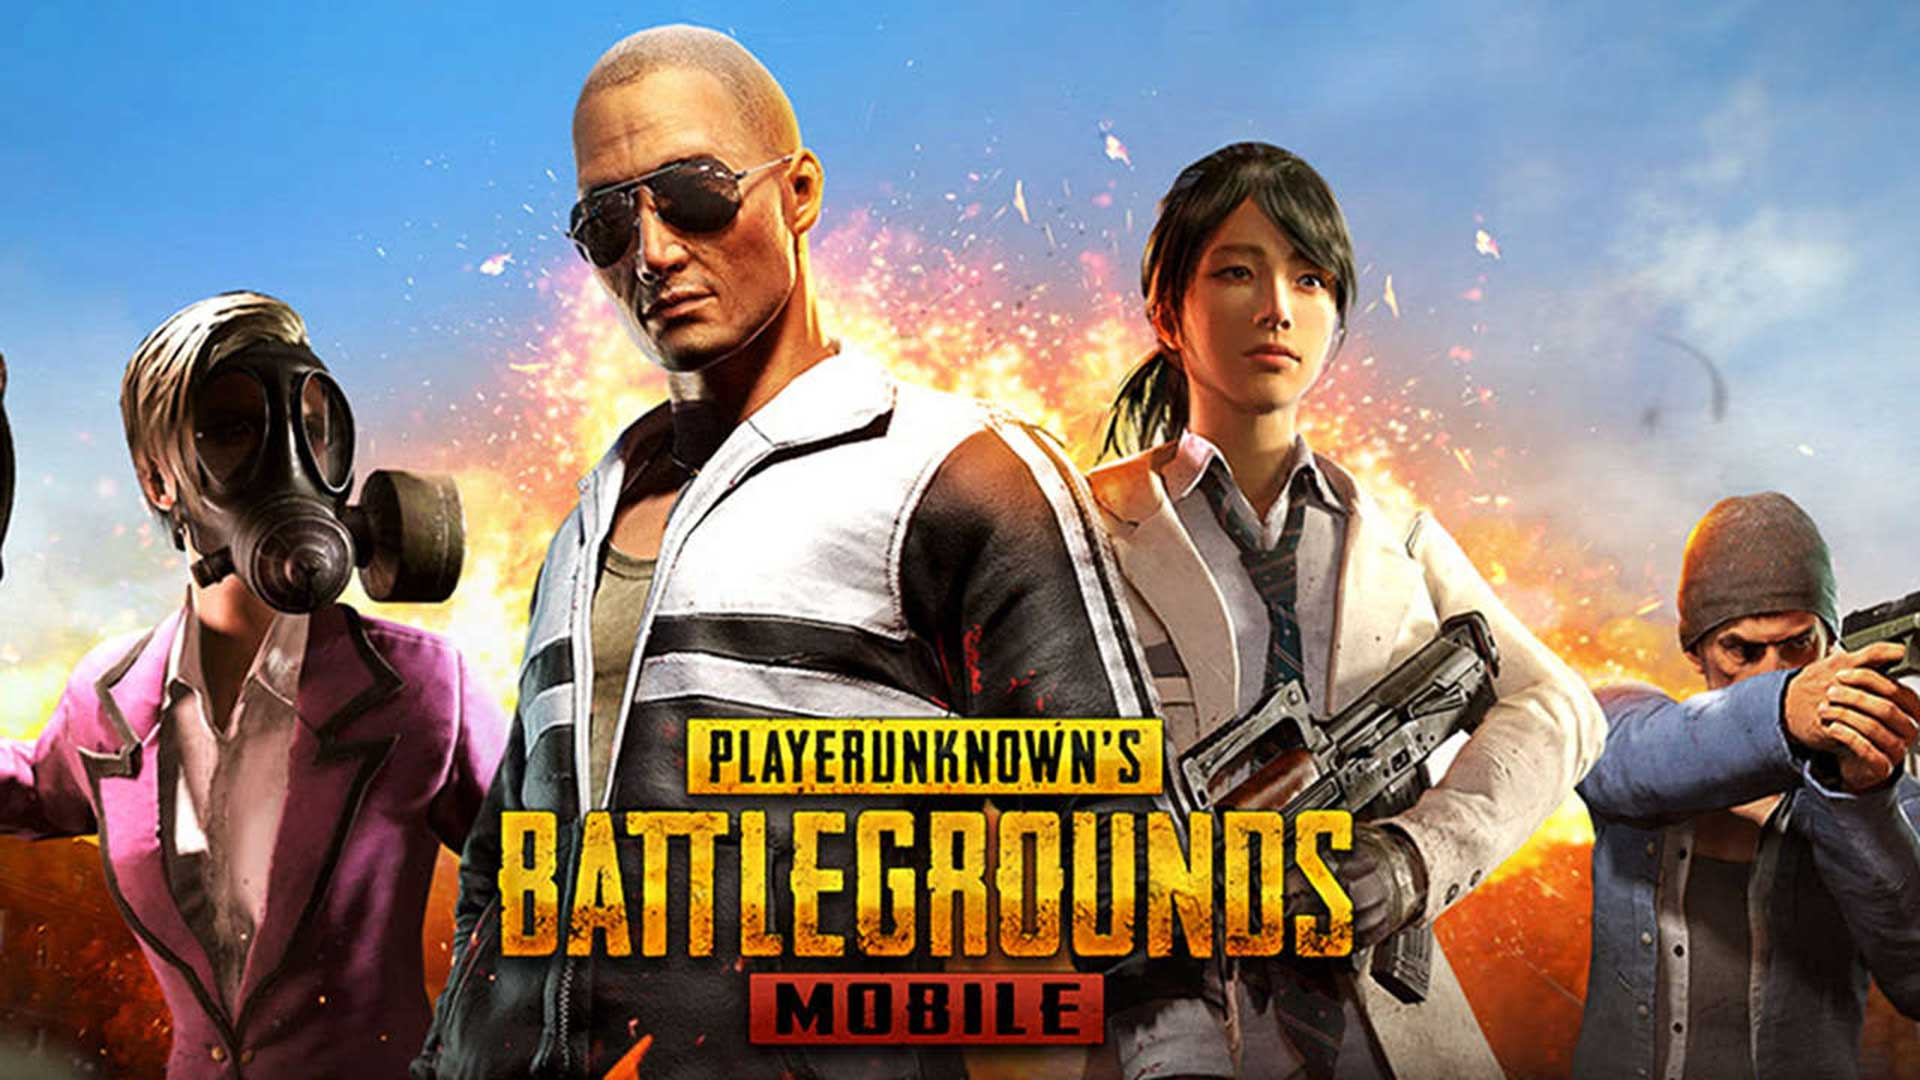 Pubg Mobile Wallpapers For Phone: Trucos Y Consejos Para Arrasar En PUGB Mobile Para Android